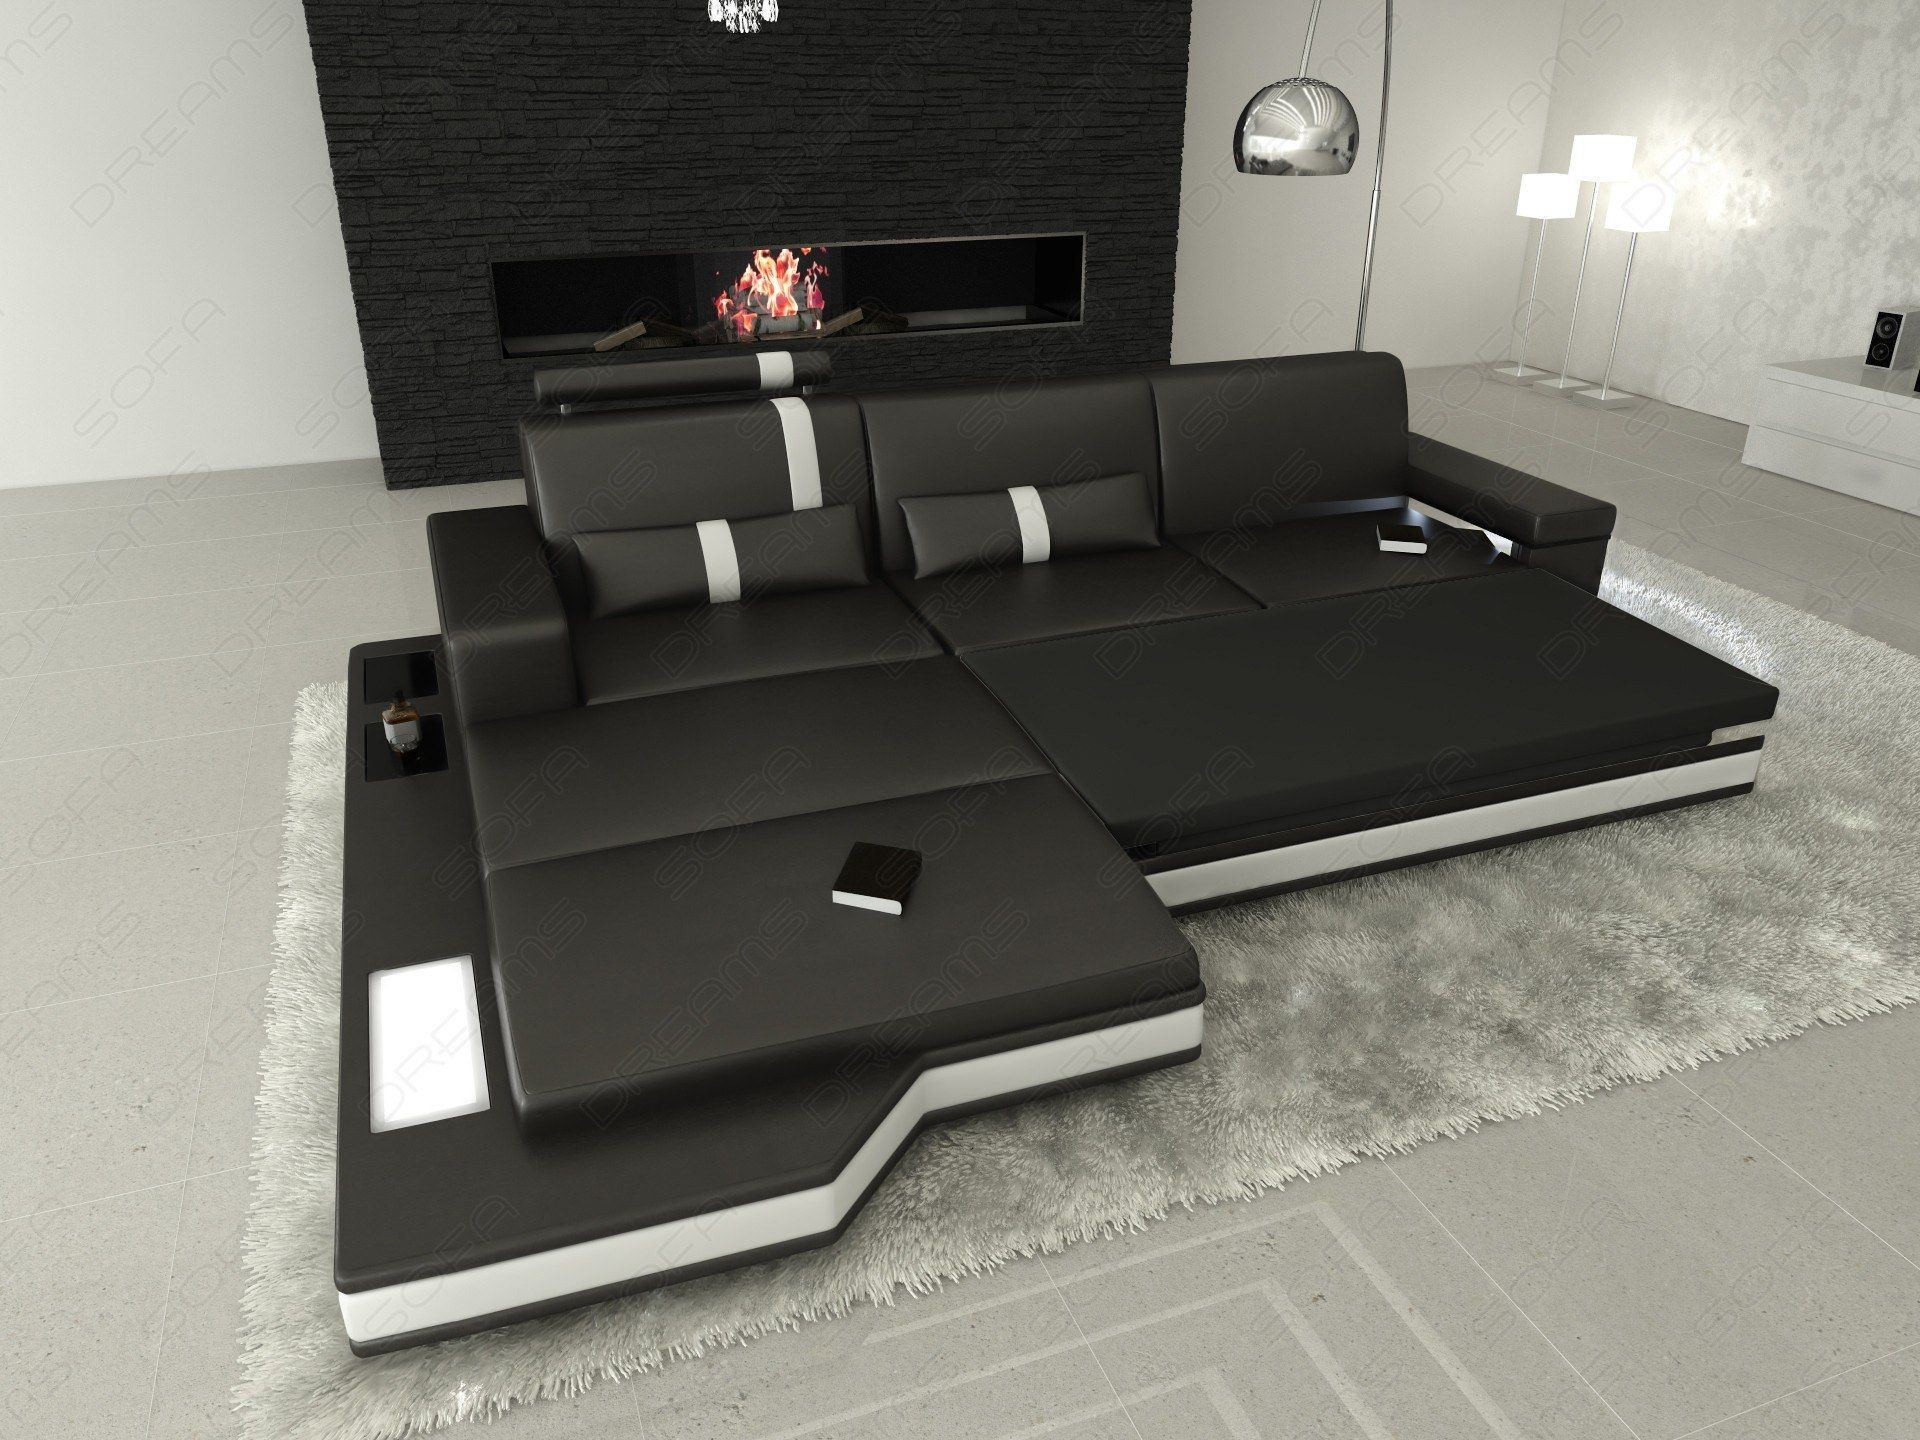 sofas ledersofa ledersofa messana l form led sofas. Black Bedroom Furniture Sets. Home Design Ideas